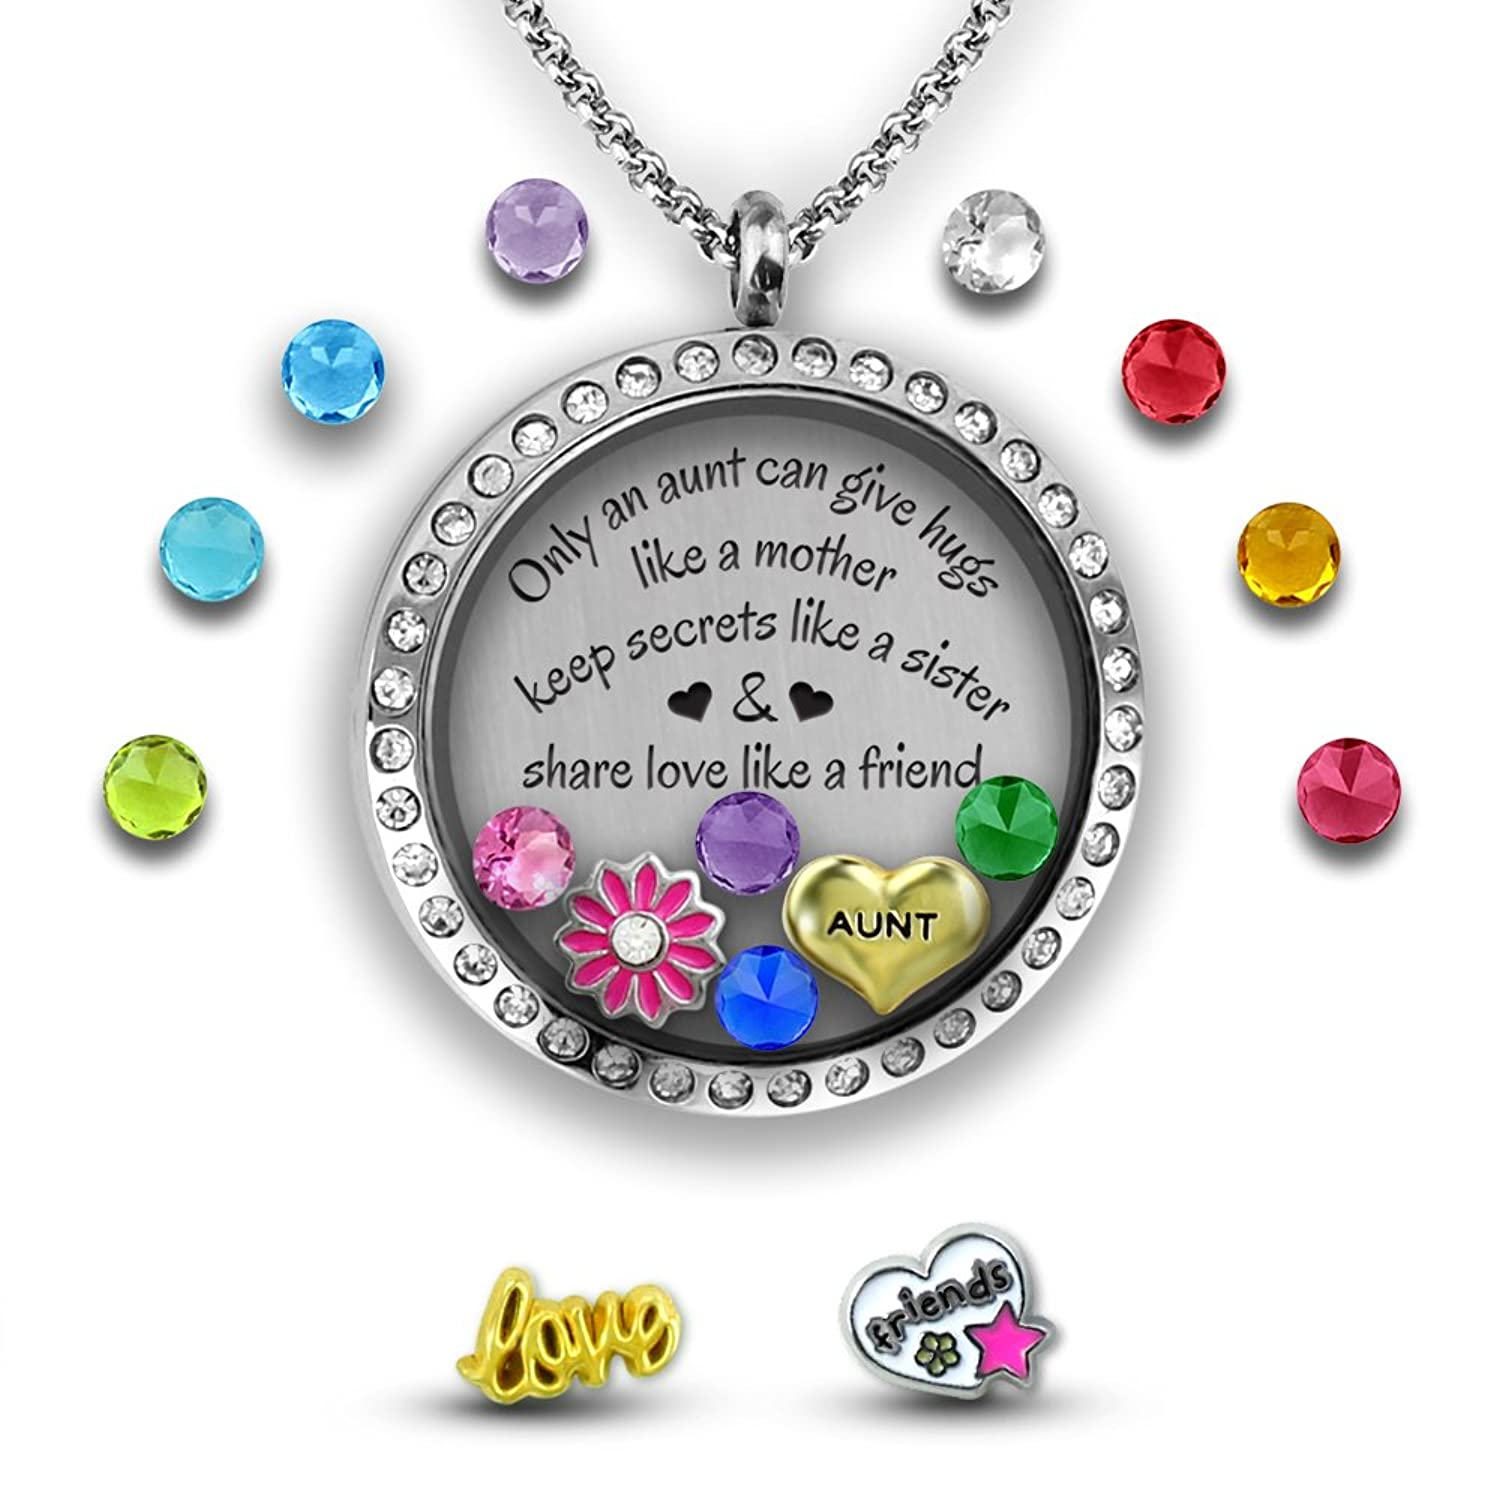 designs stardust necklace morse aunt code gold product silver list a decoder greek